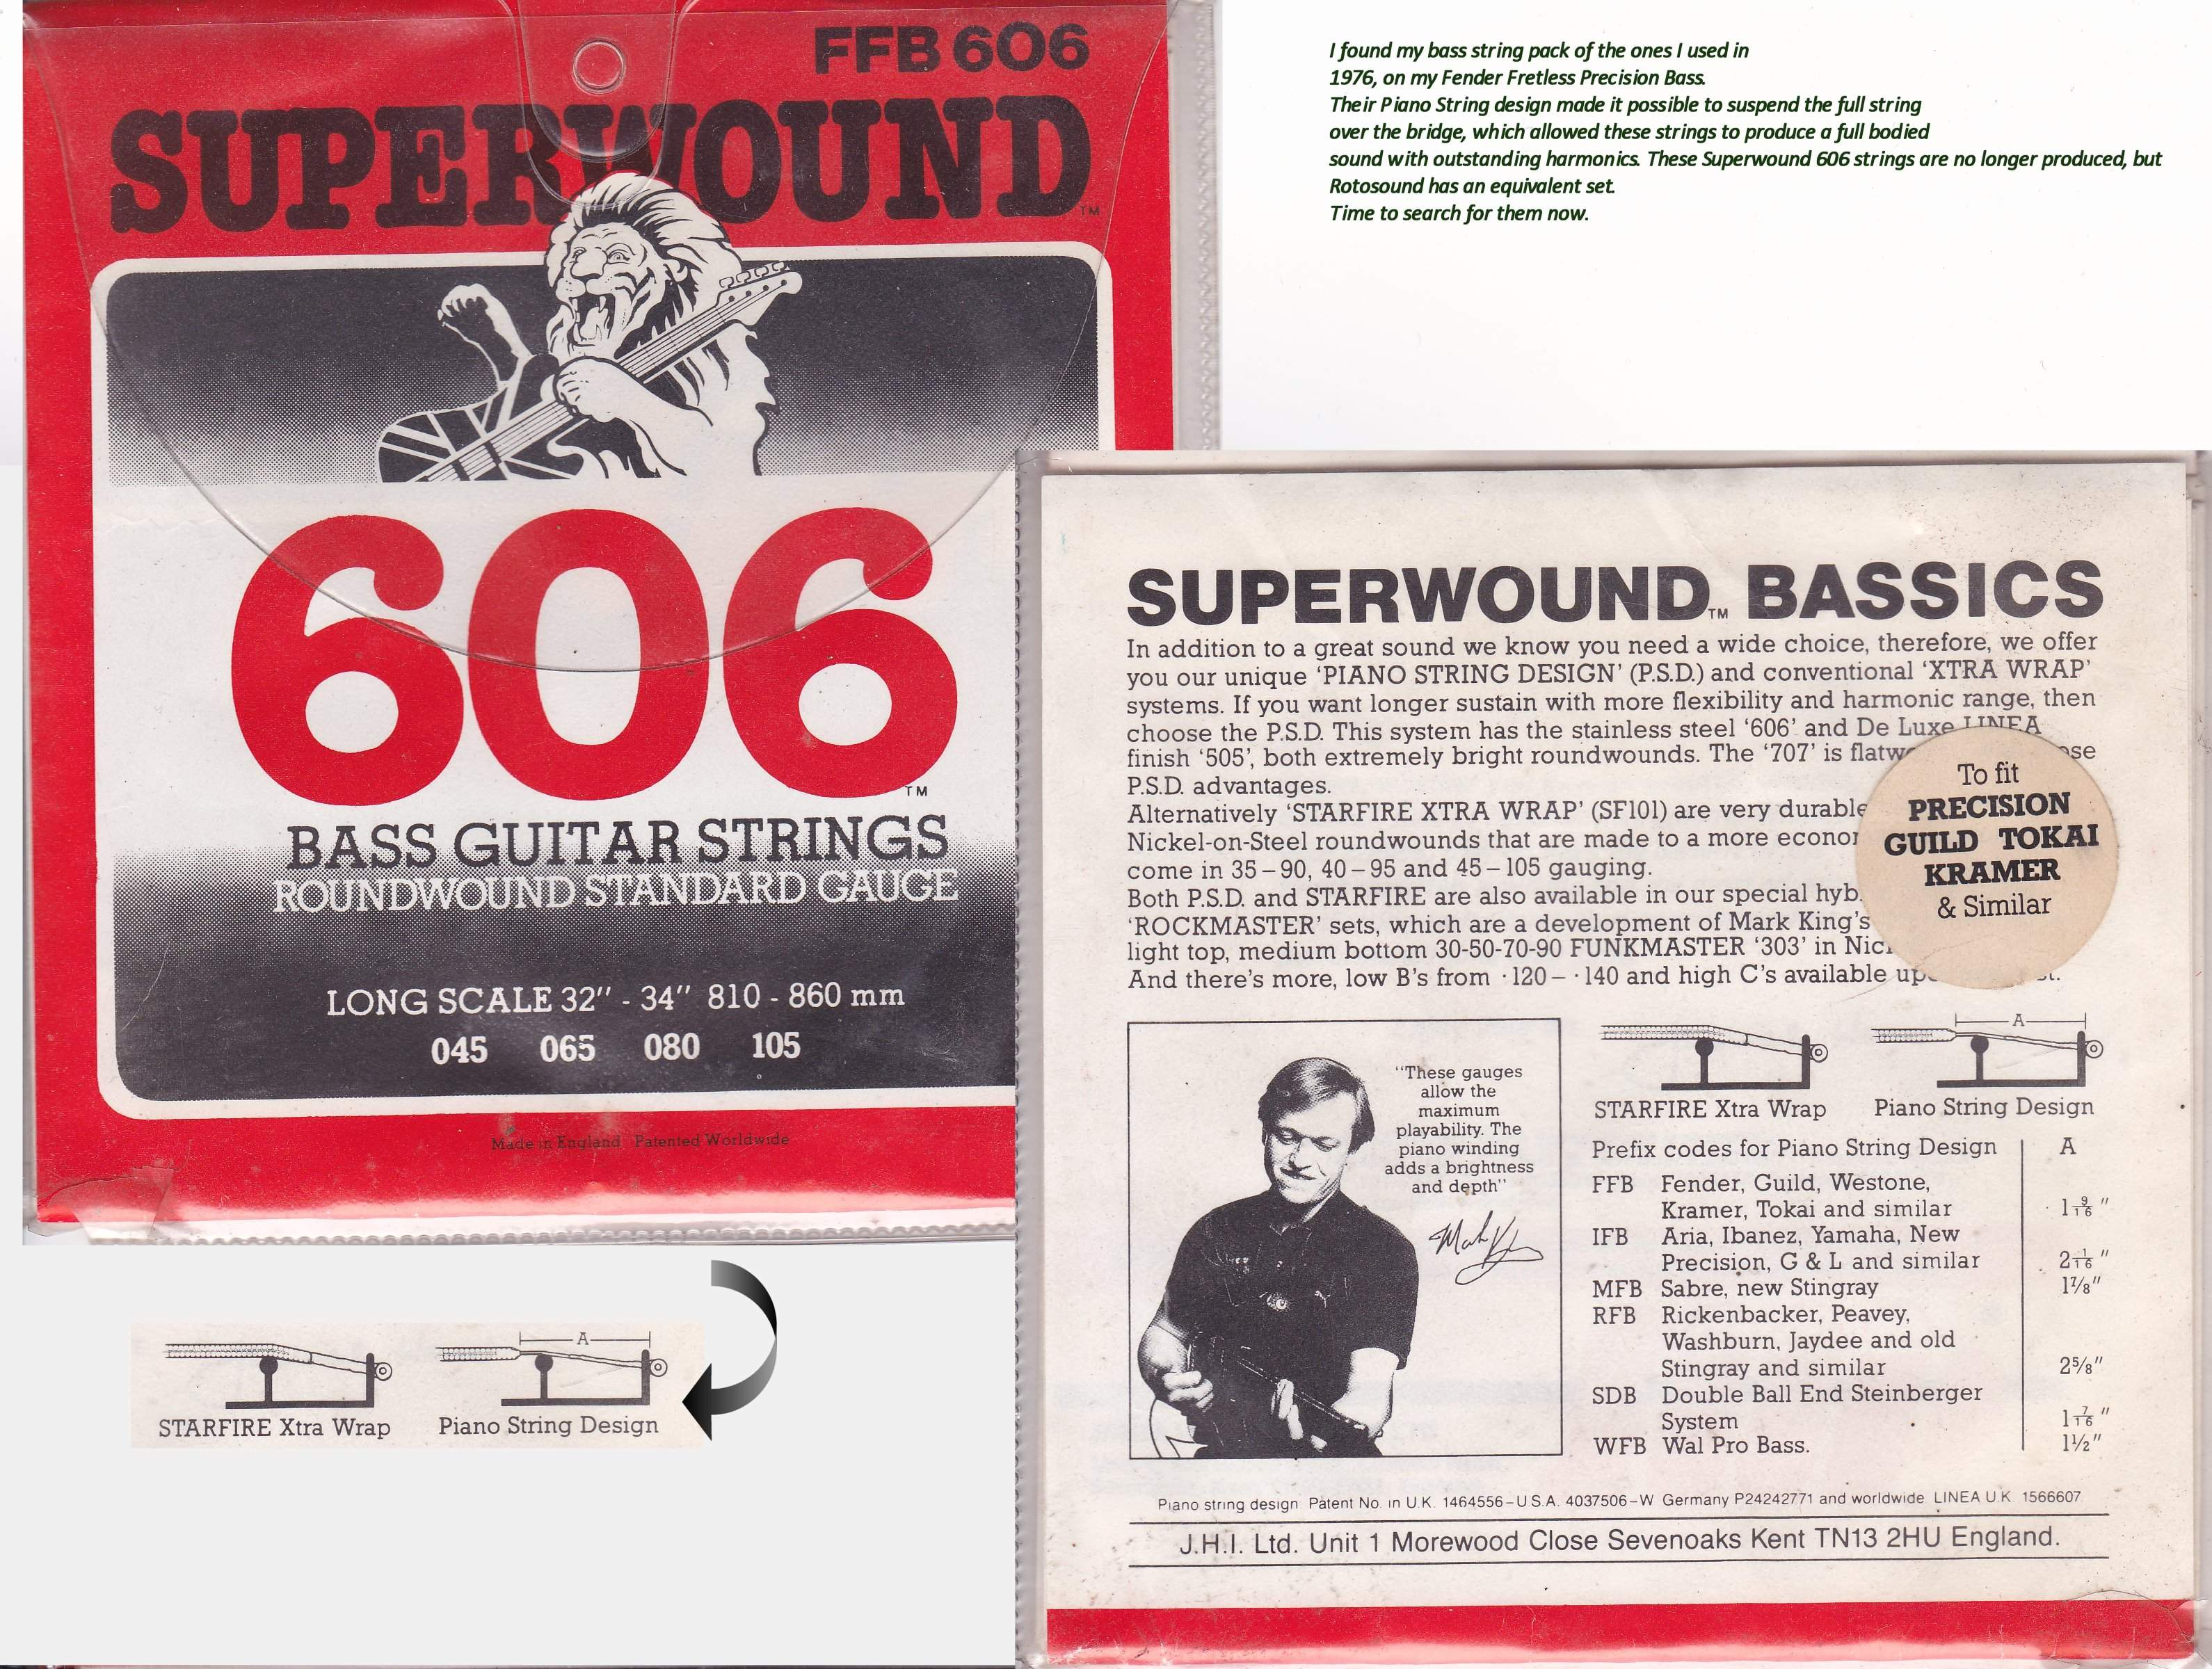 01a-My bass strings from 1976.jpg